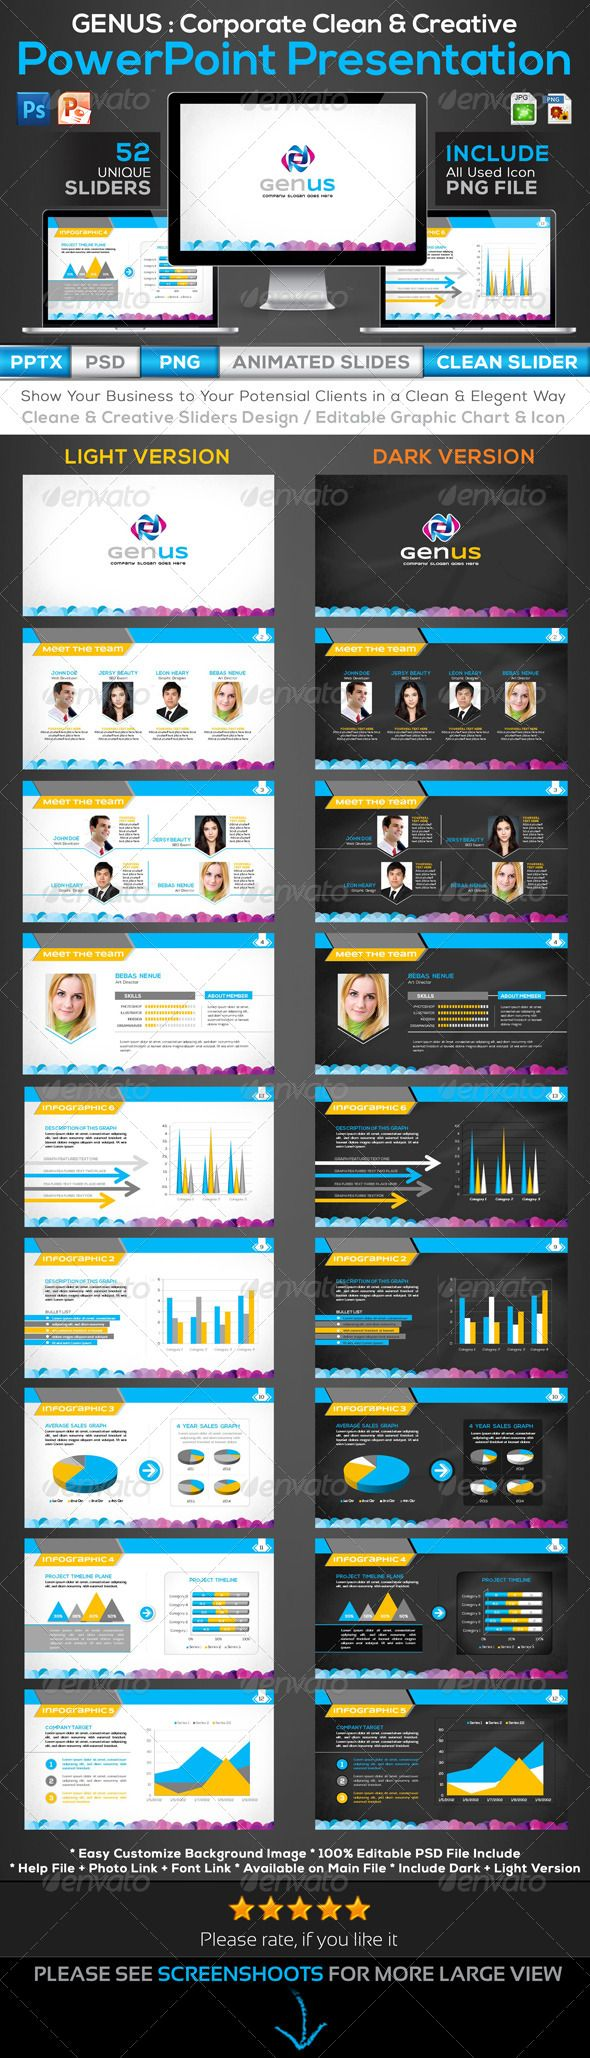 most creative business presentations images